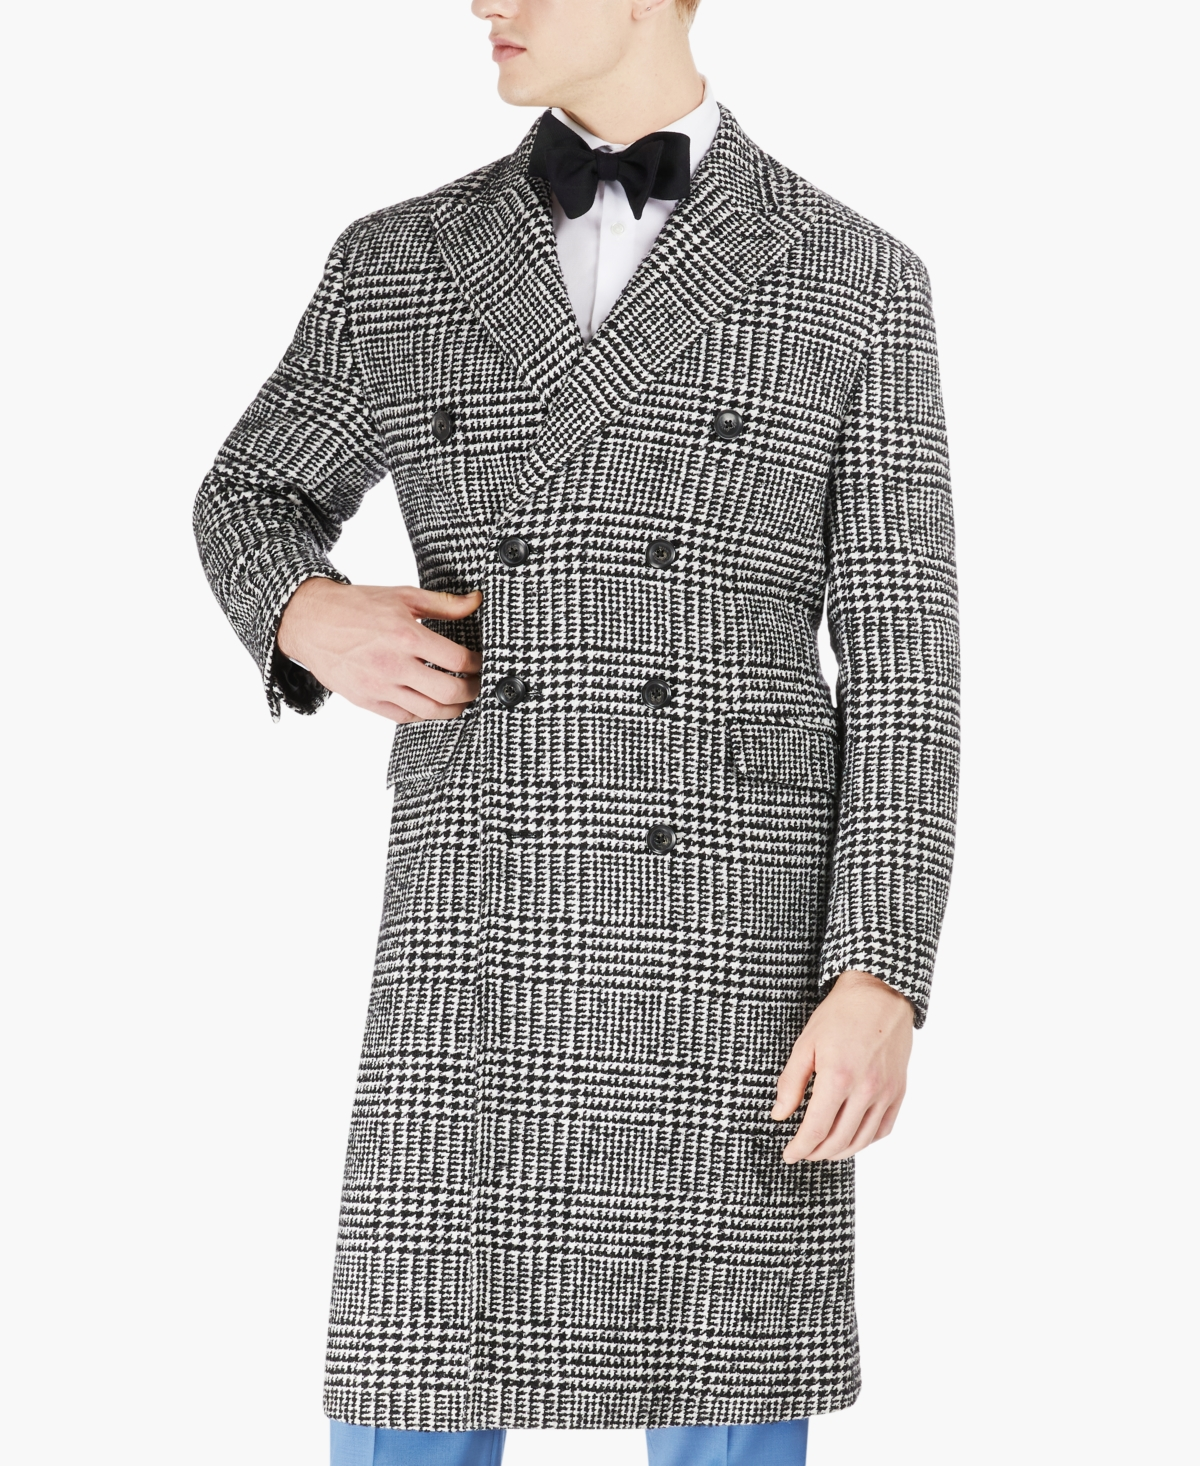 1960s Men's Clothing Tayion Collection Mens Classic Double-Breasted Glen Plaid Overcoat $495.00 AT vintagedancer.com